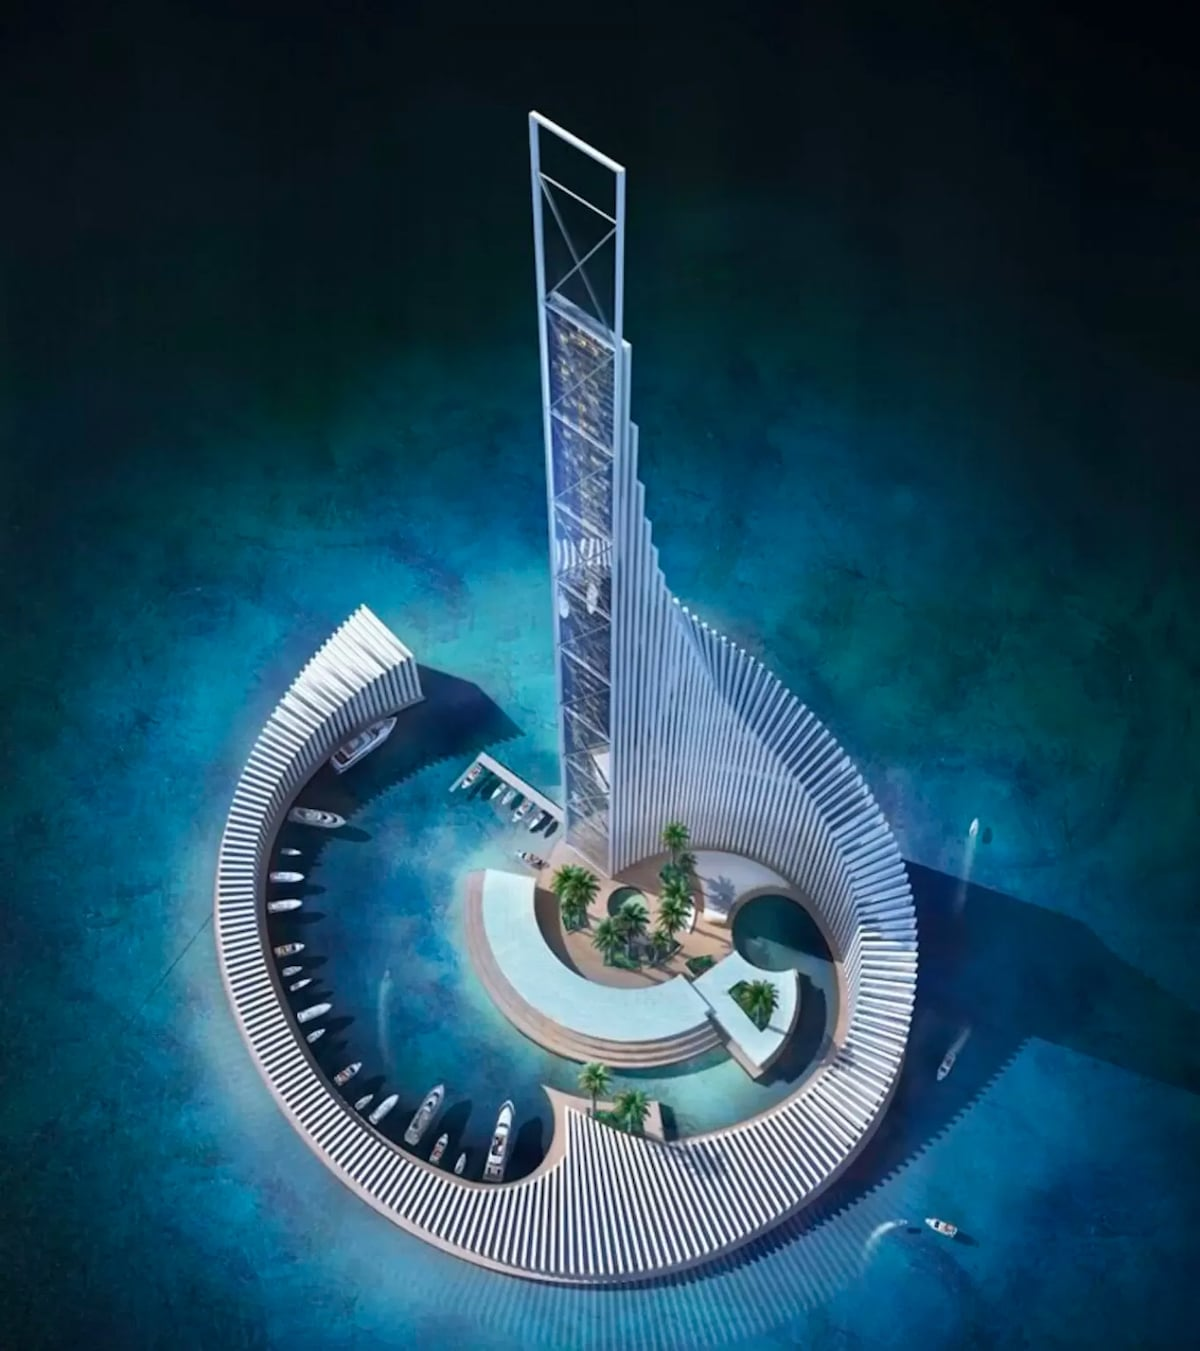 Proposal for the Second Tallest Tower in Africa, Domino Tower, visualized by xCassia